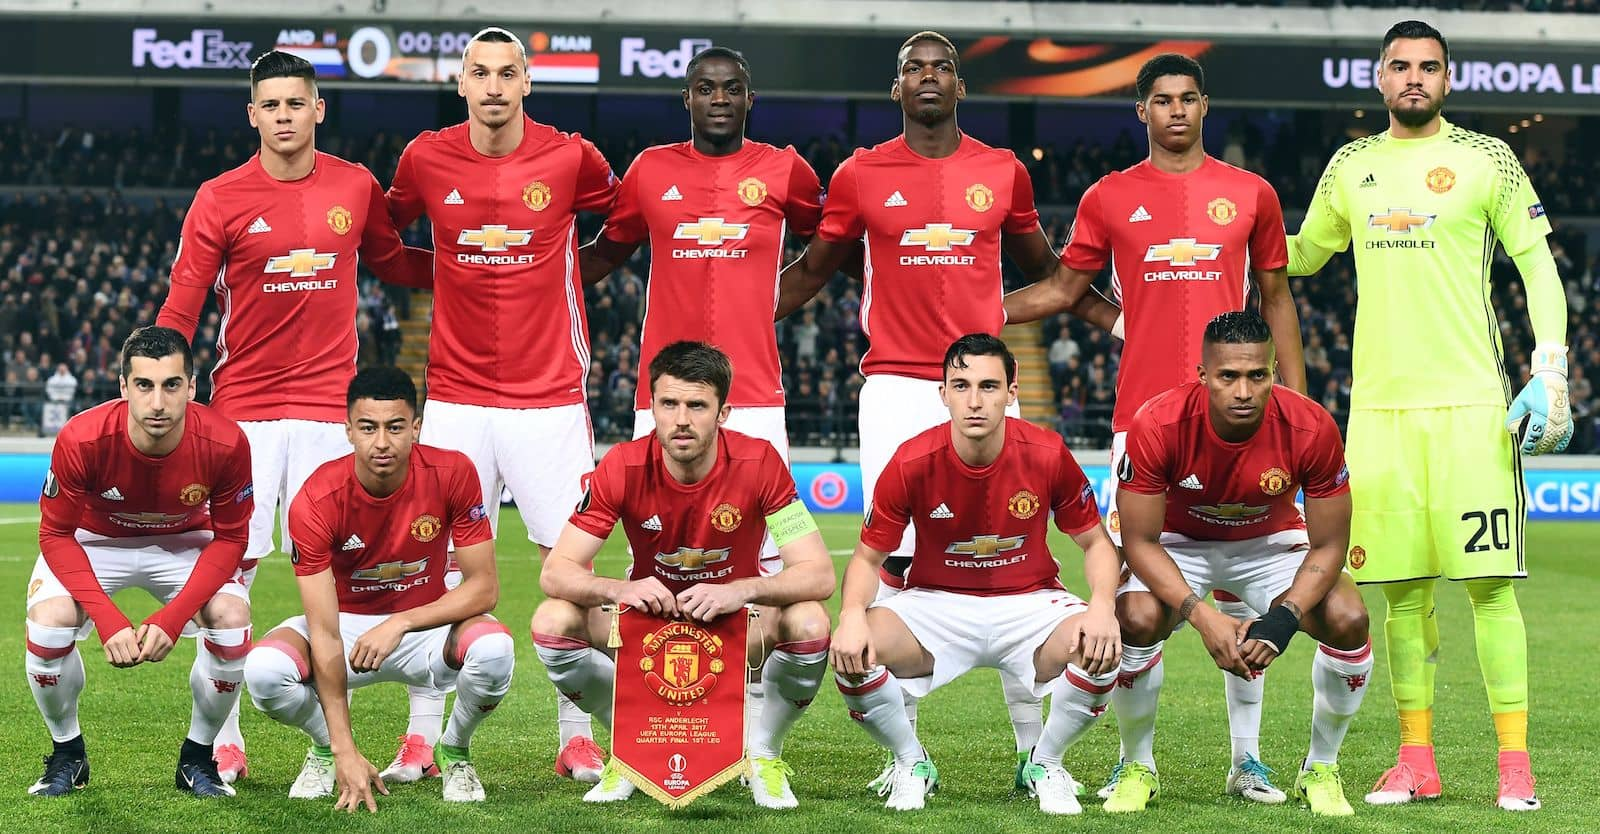 Manchester United Vs Anderlecht Potential Xi With Ibrahimovic And Mkhitaryan